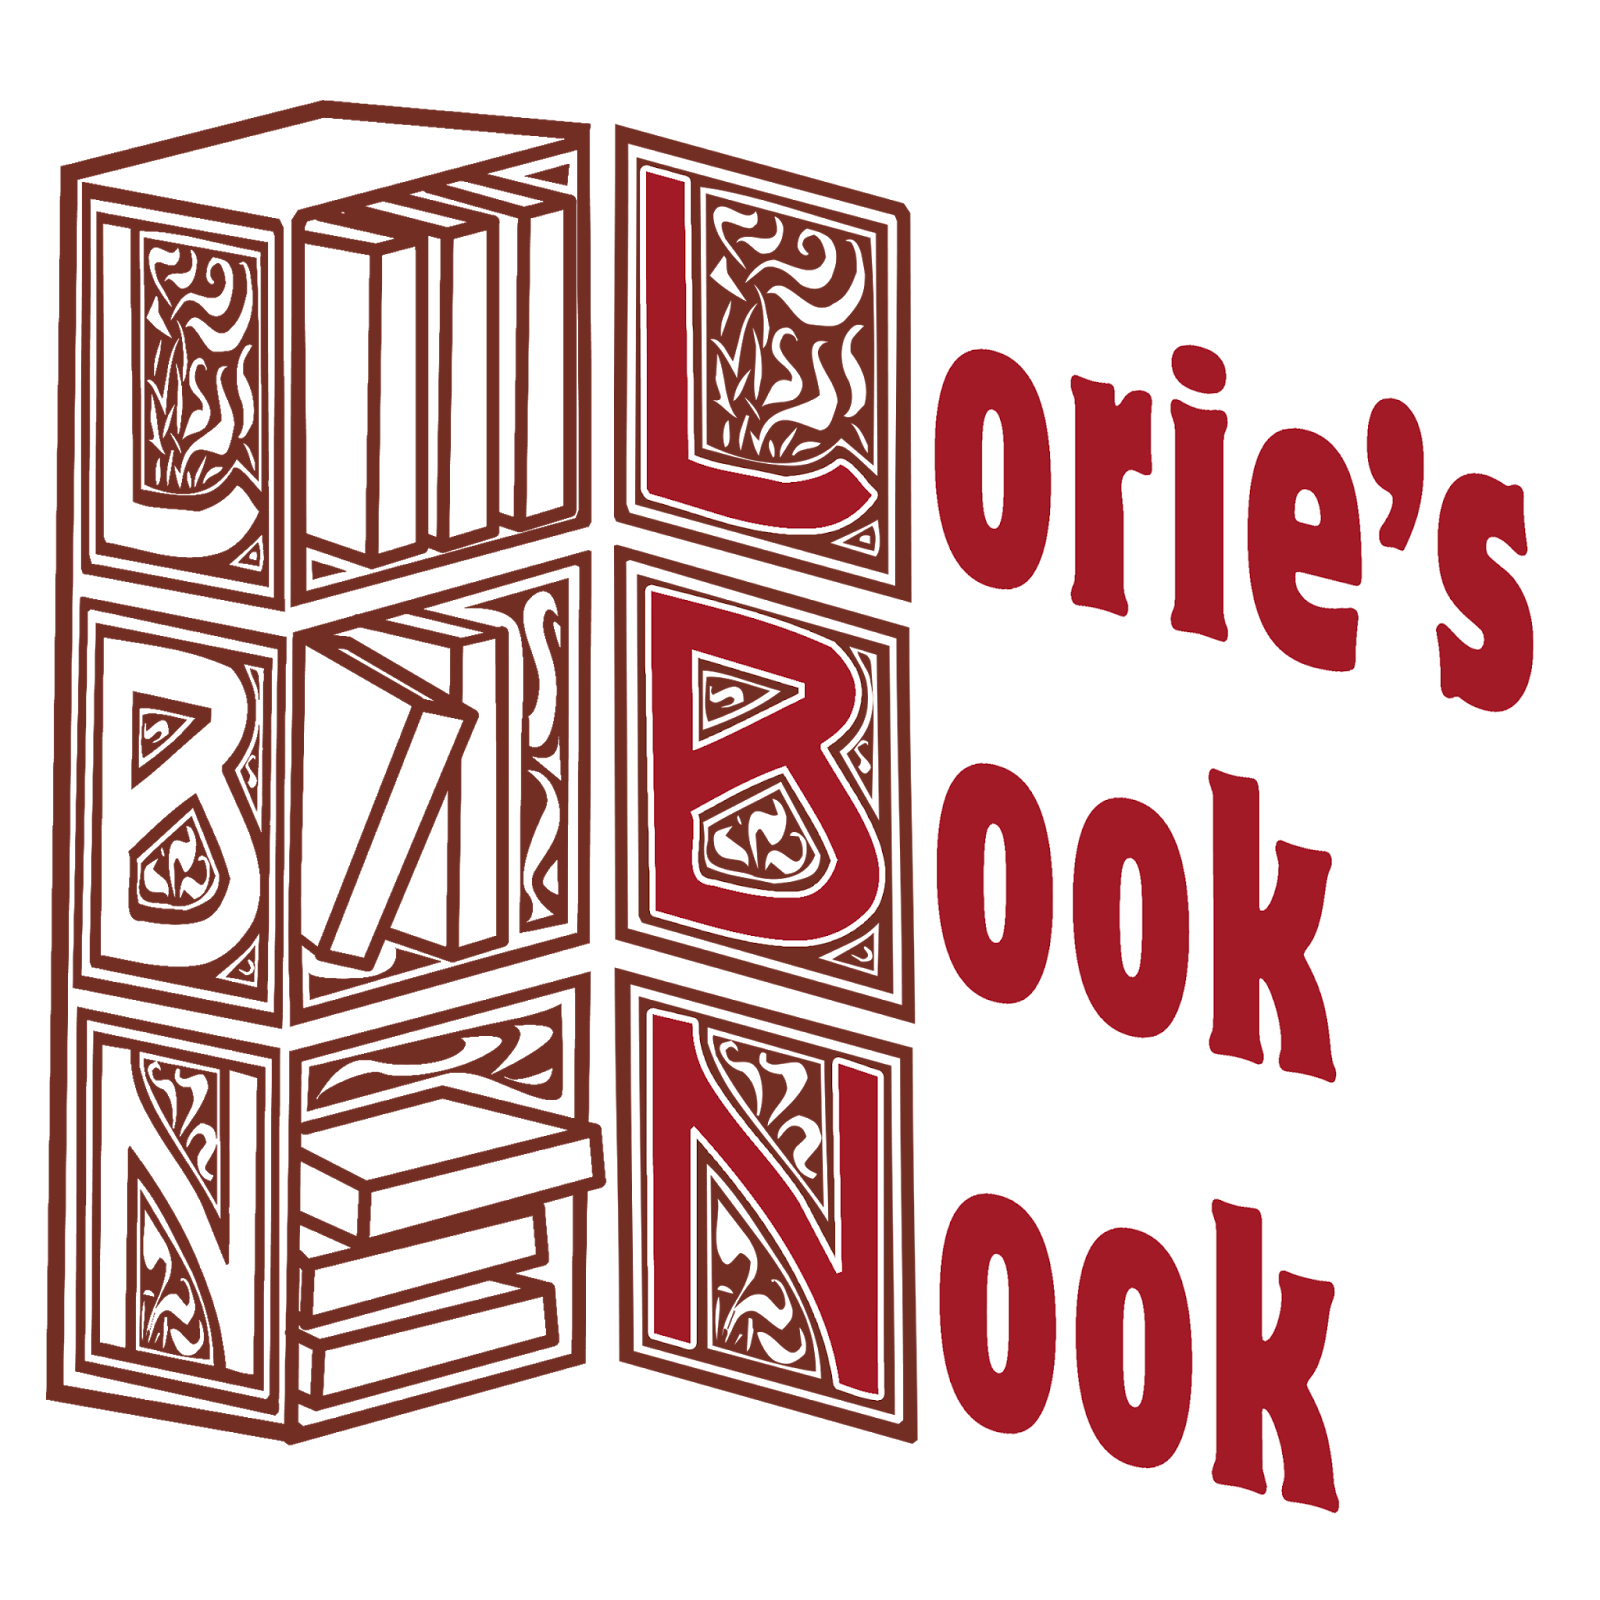 The book nook clipart vector free library WATERLOGG PRODUCTIONS: Lorie's Book Nook with Lorie Kellogg Guest ... vector free library